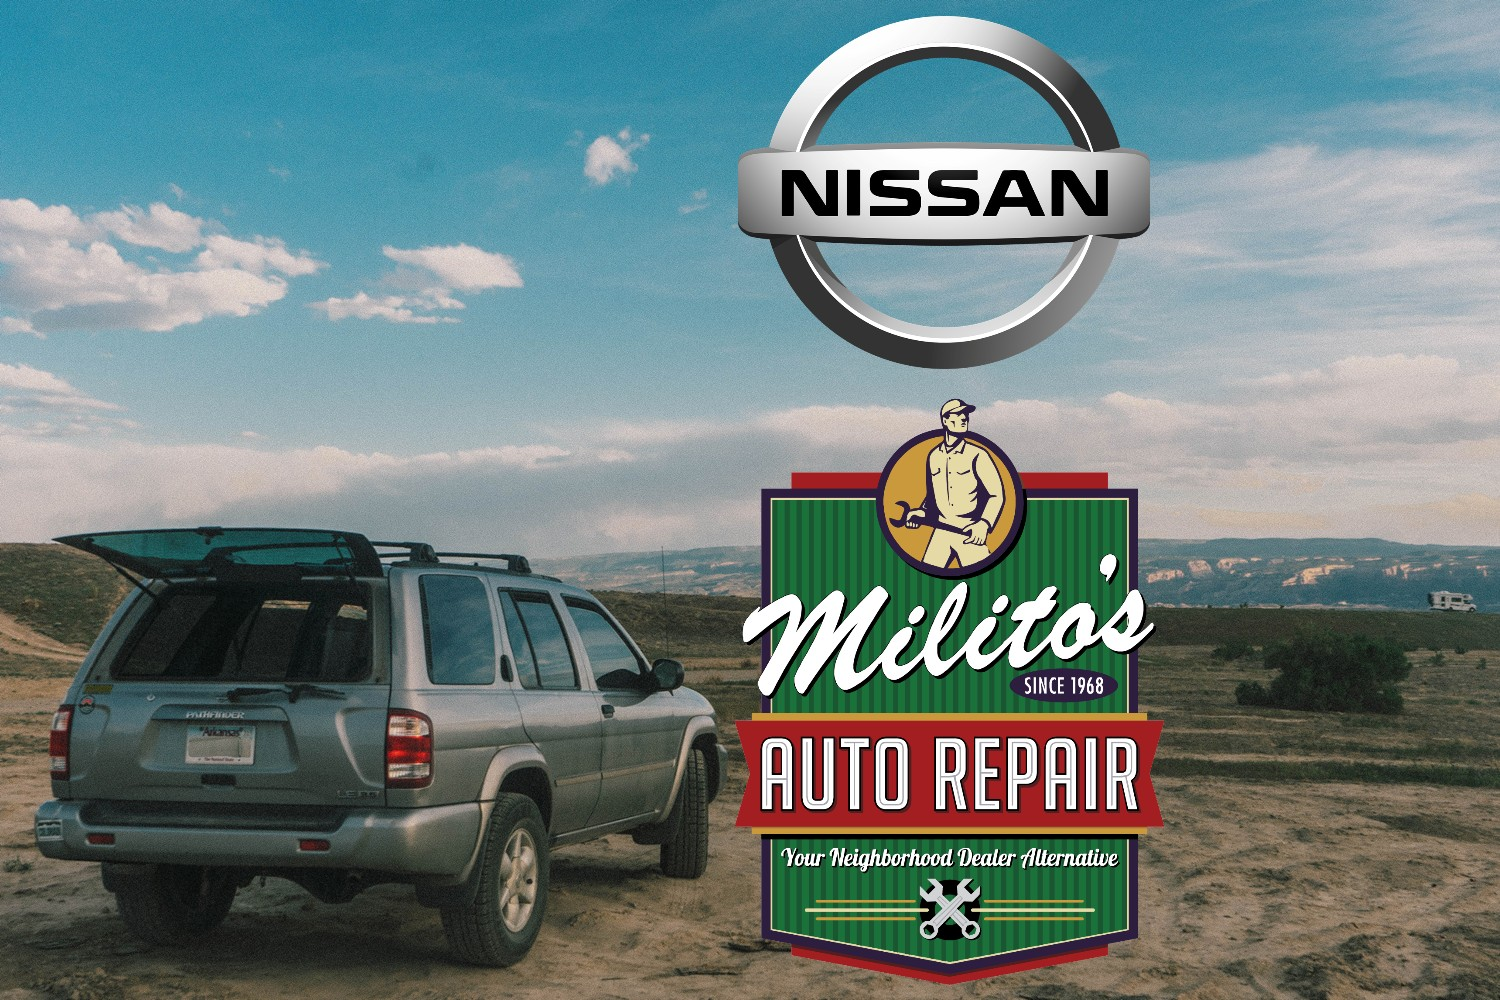 Nissan Repair Shop in Chicago, Your Local Dealer Alternative - Milito's' Auto Repair 60614